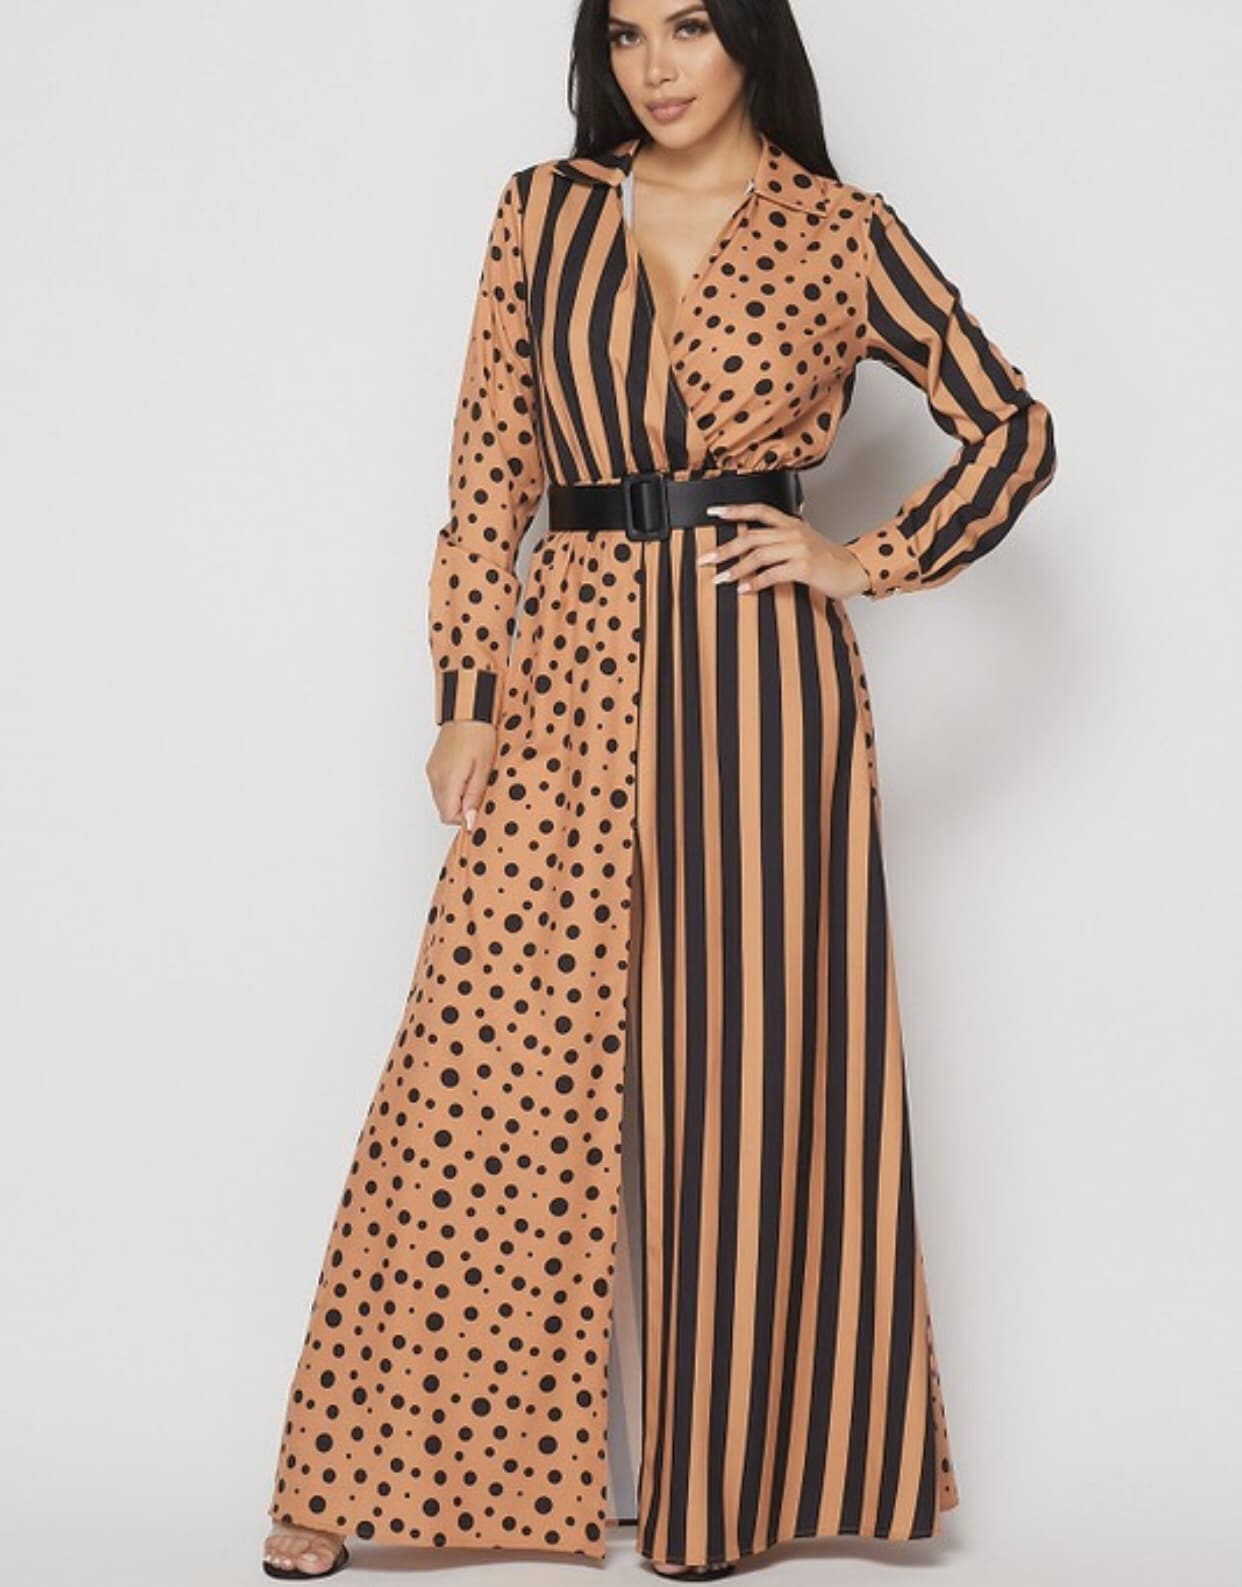 Uyanda Polka Dot x Stripes Maxi Dress For Fall Winter Spring Summer